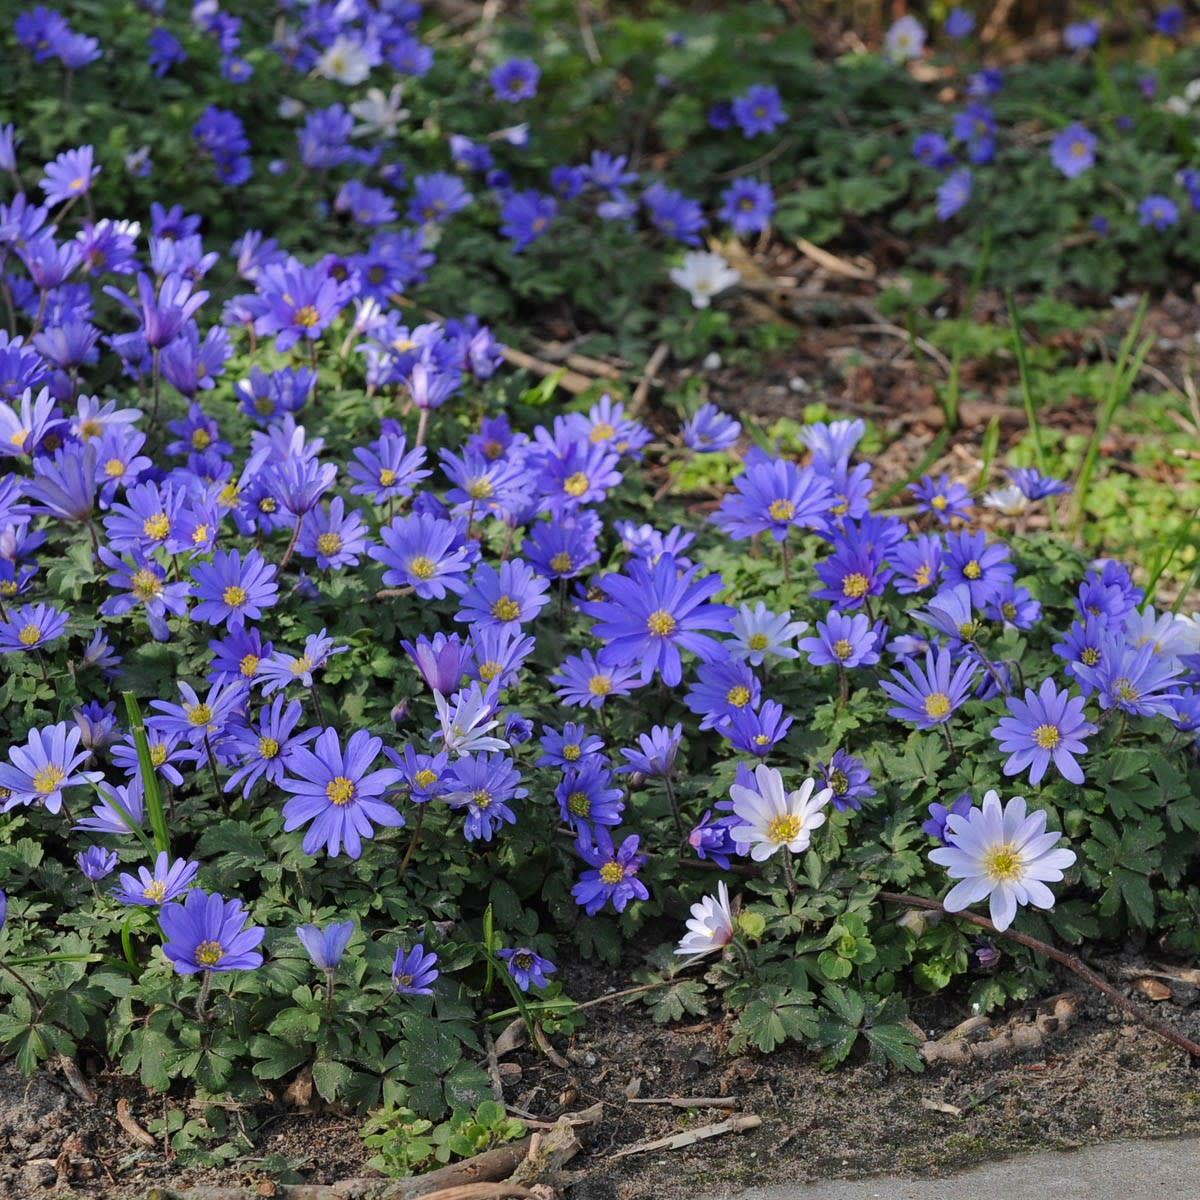 Beautiful blue wildflowers called anemone or pascal flower could be found in the hills of Livingston, Montana.